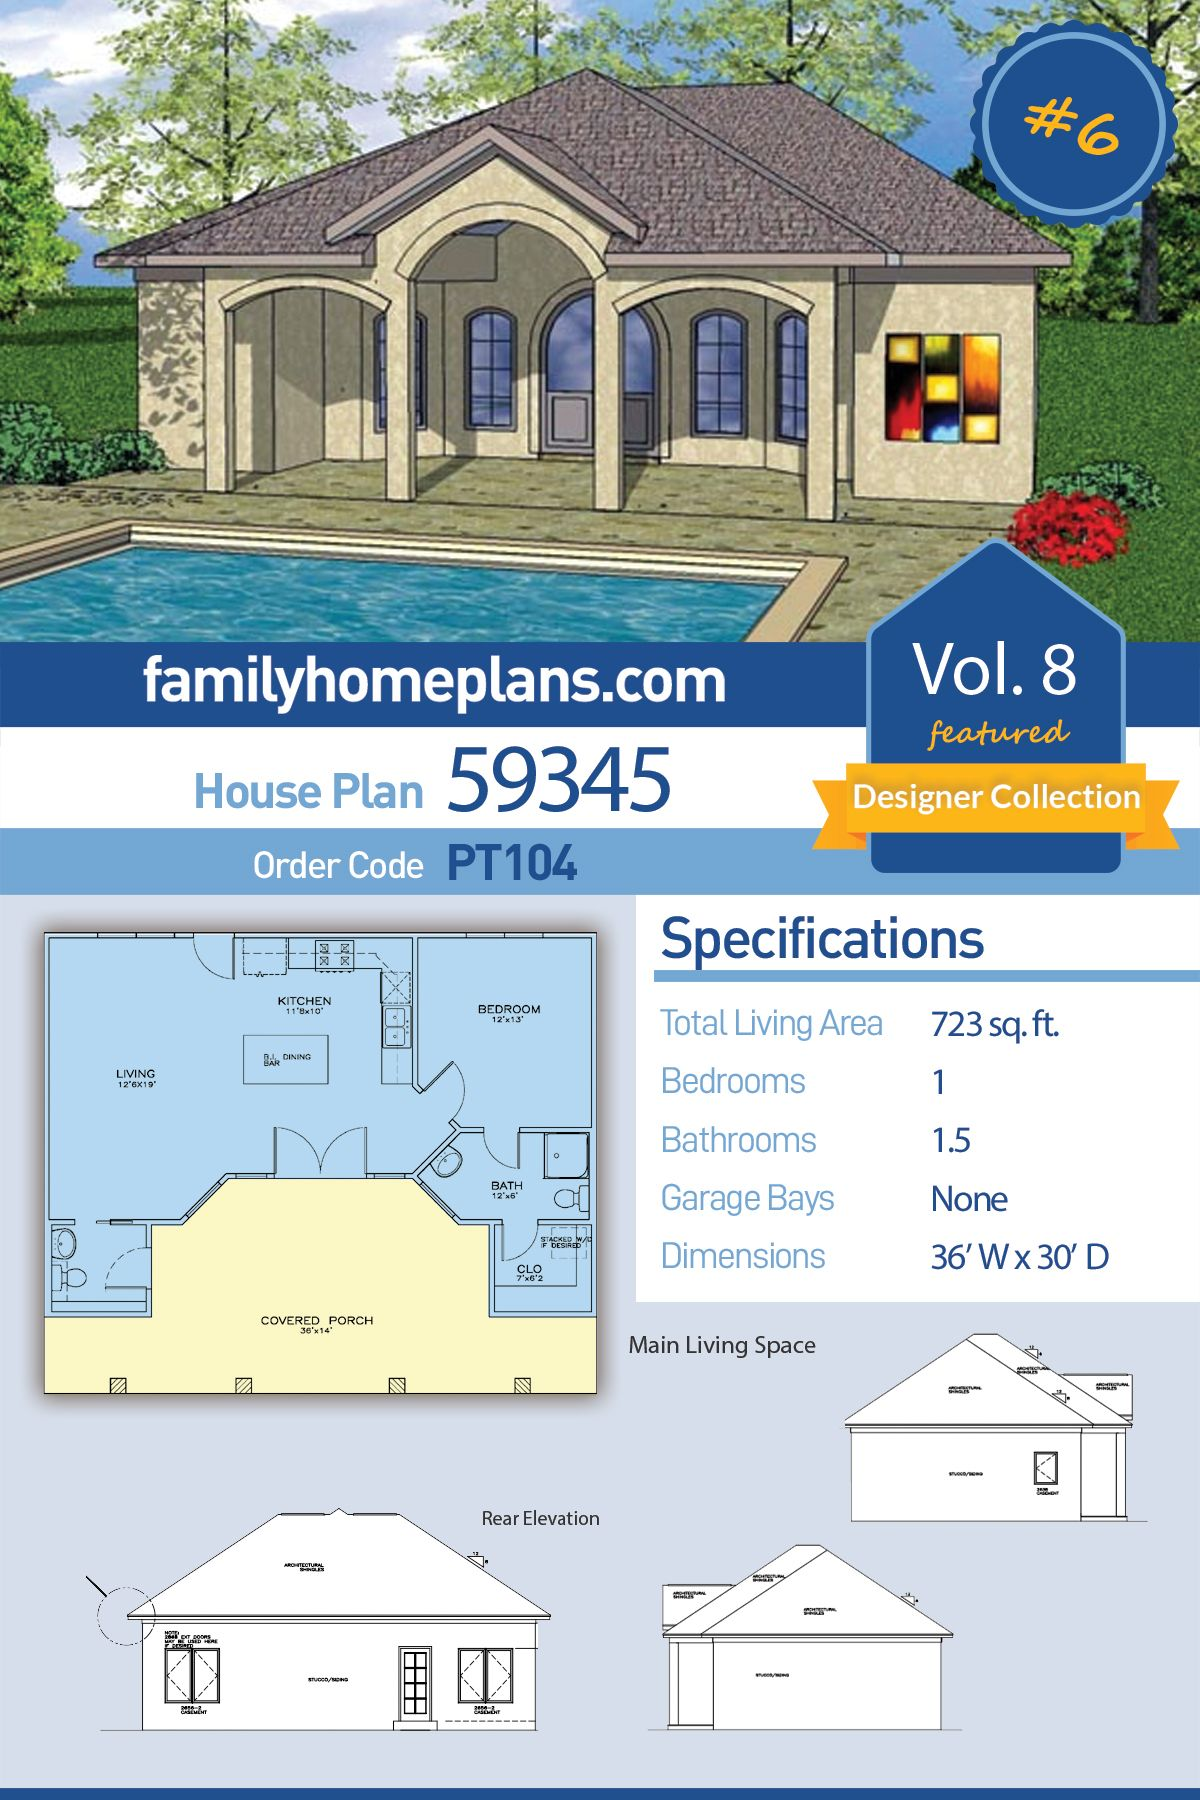 Tiny Home Floor Plan with European Styling Guest House or Pool House